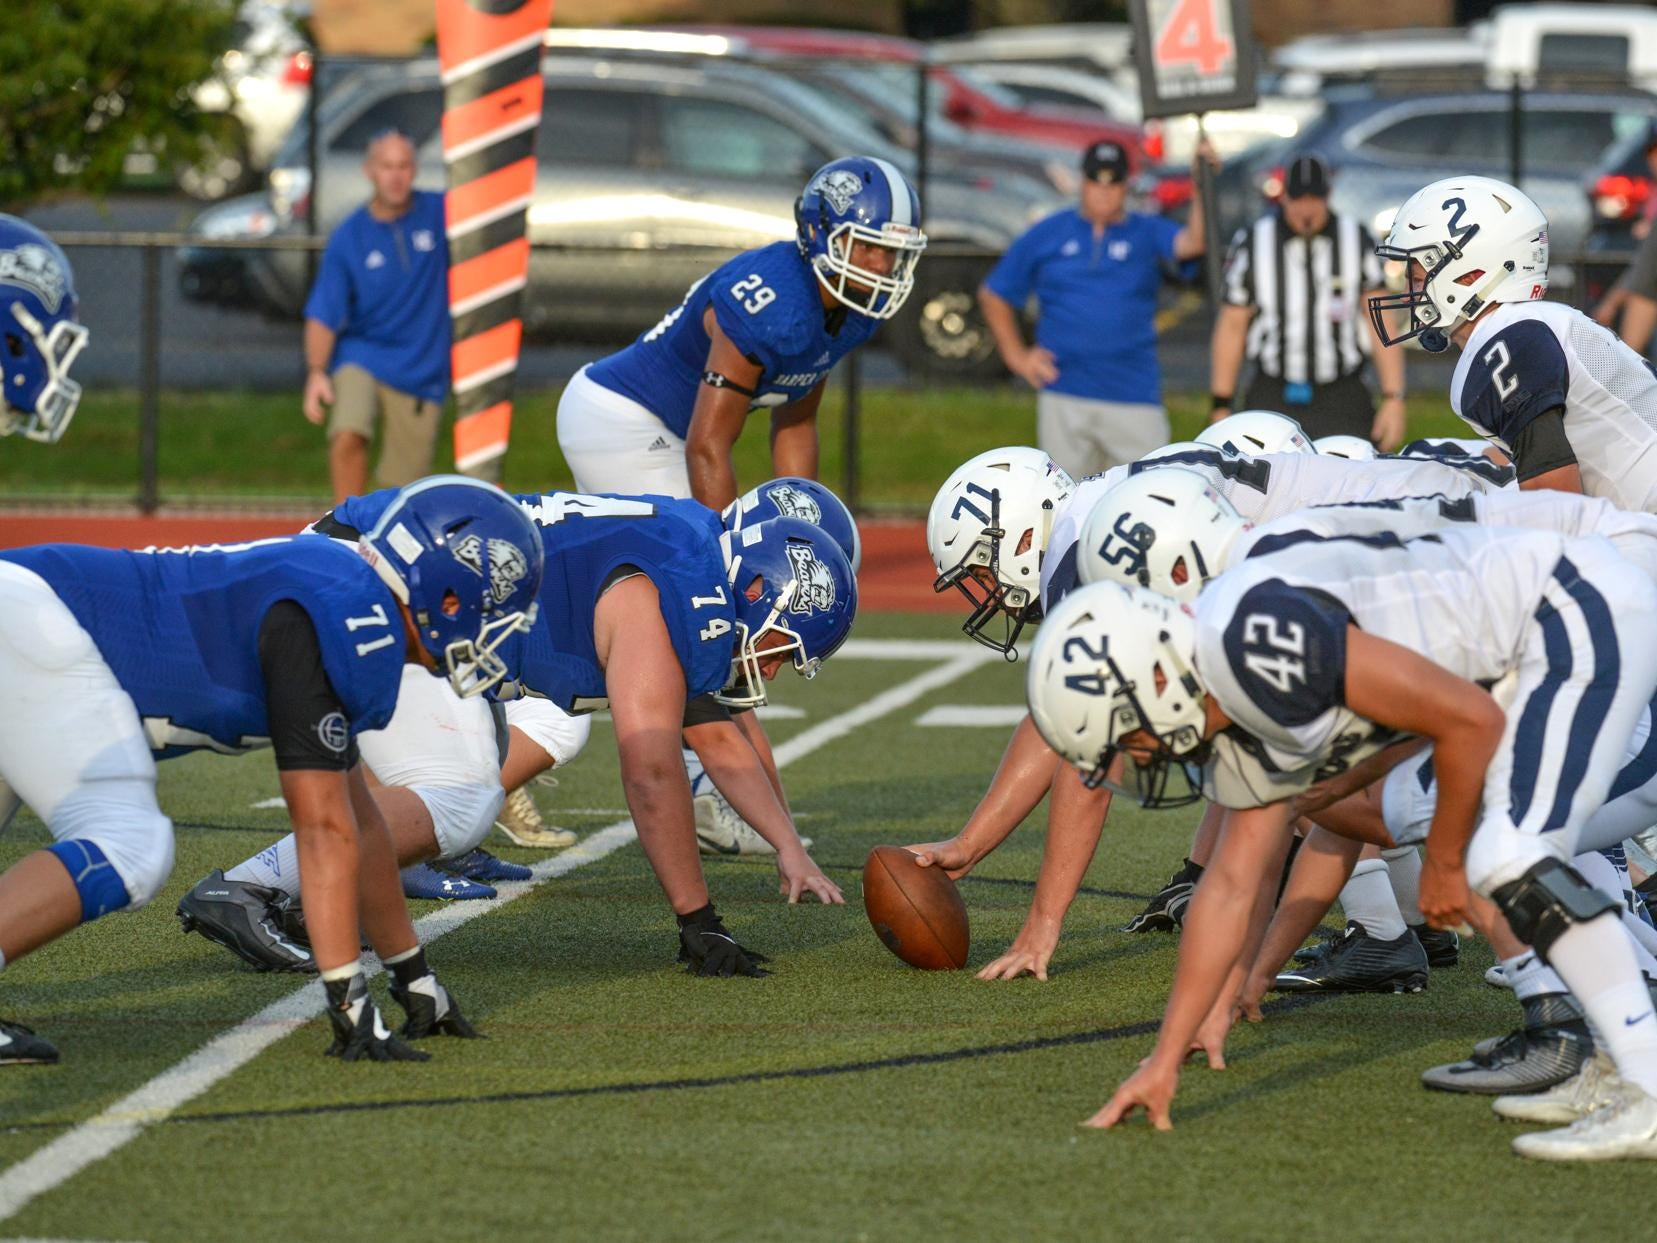 Harper Creek and Gull Lake in game action Friday night.